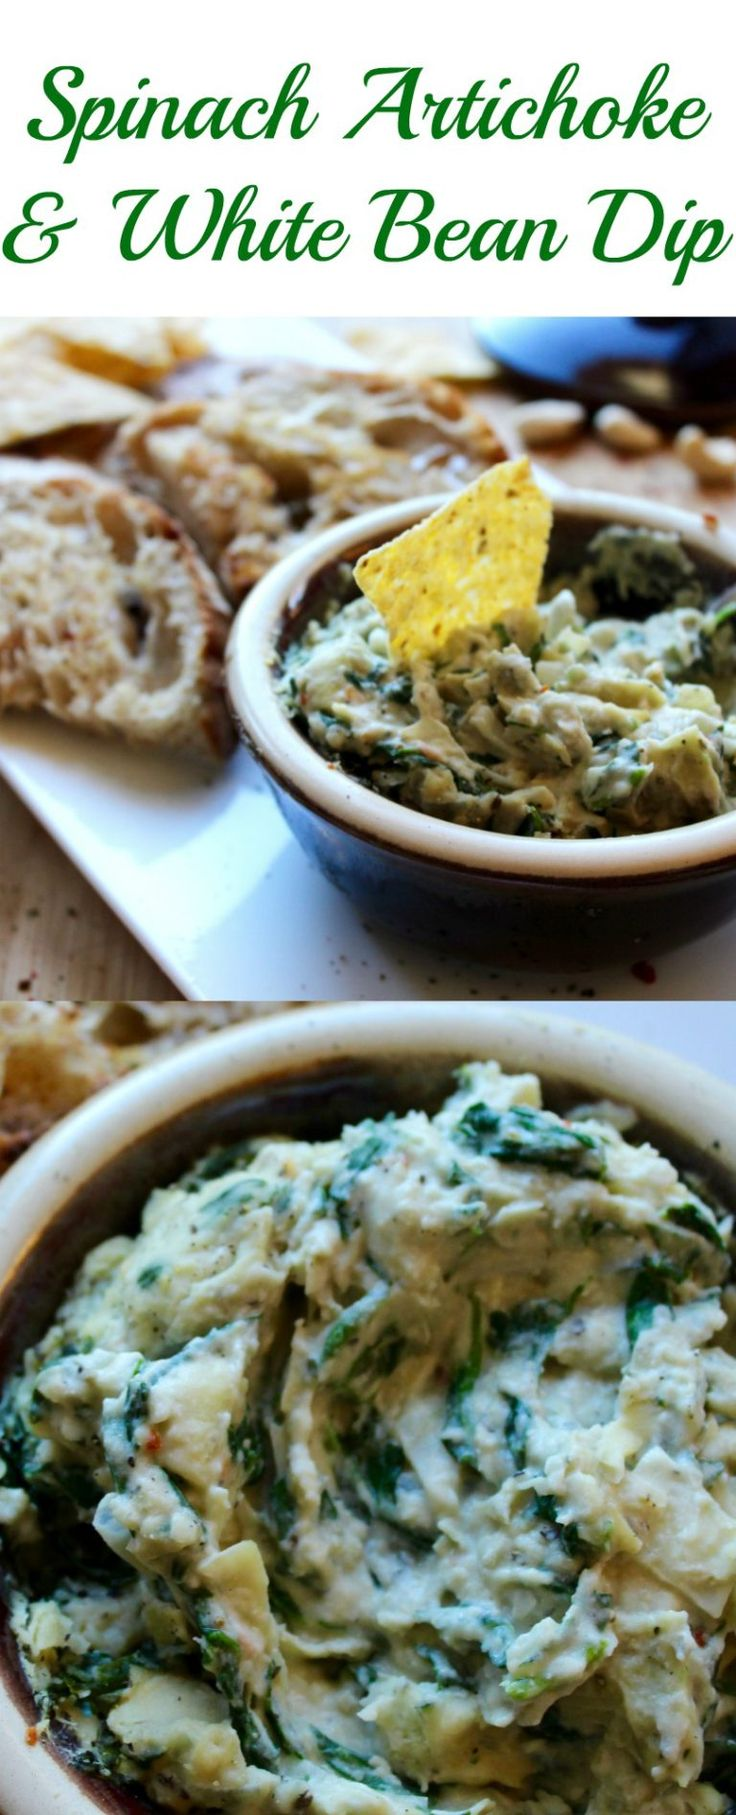 Hot Spinach, Artichoke and White Bean Dip dairy free, gluten free, and vegan!